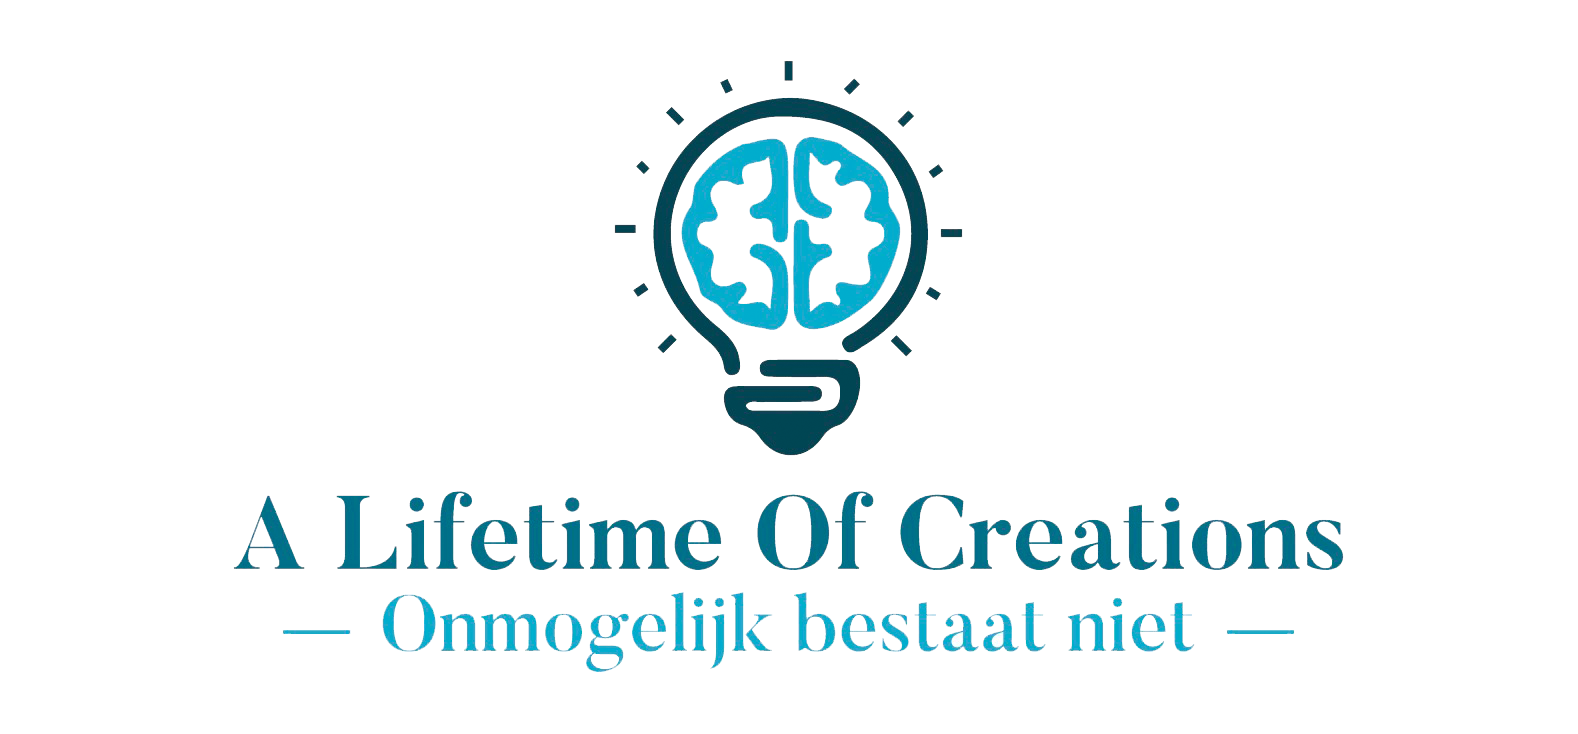 Fotografie: A Lifetime of Creations